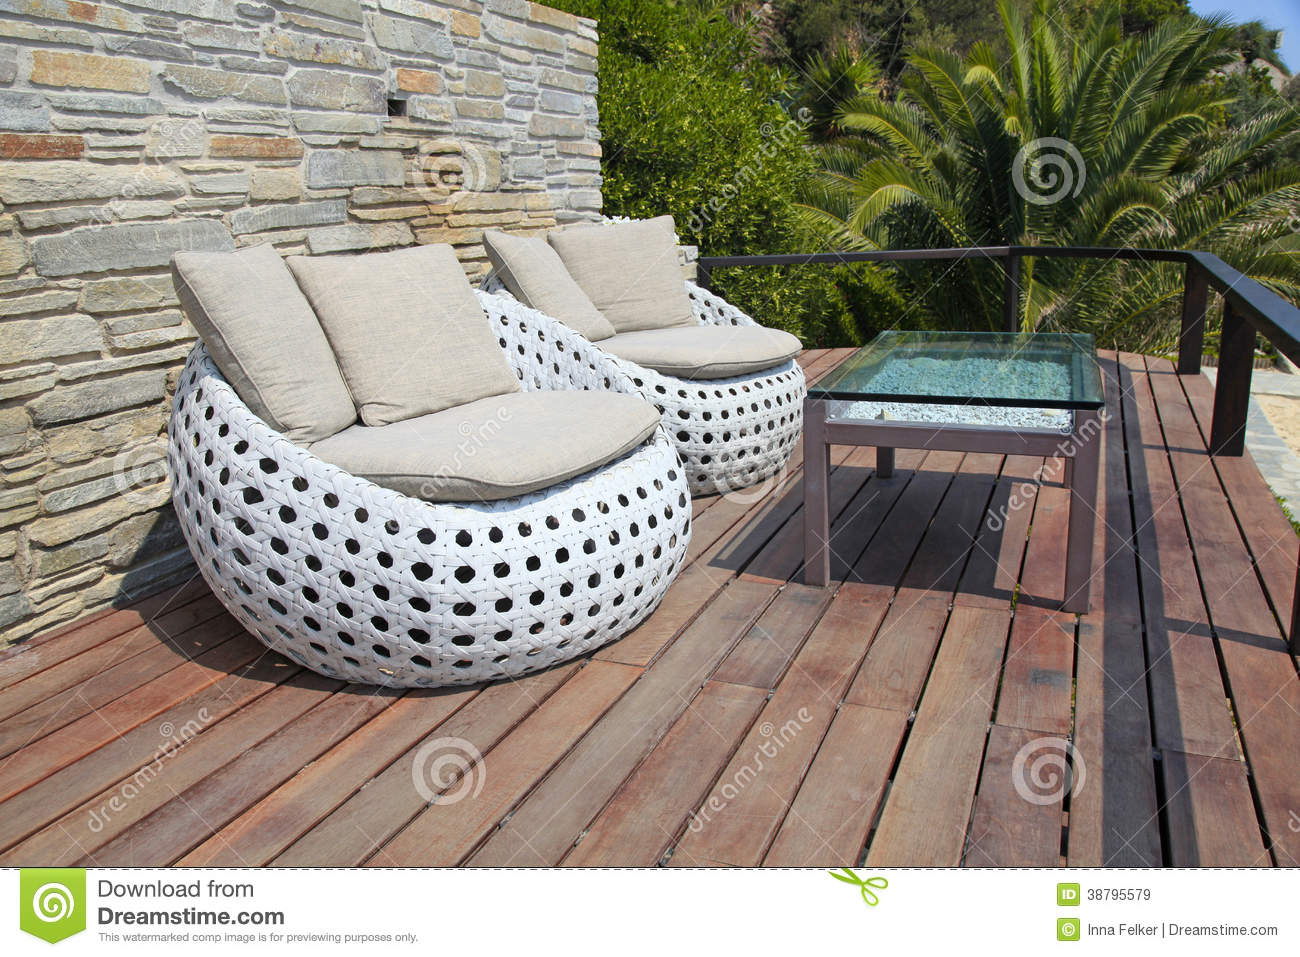 White Outdoor Furniture On Wood Resort Terrace Stock Photo - Image: 38795579